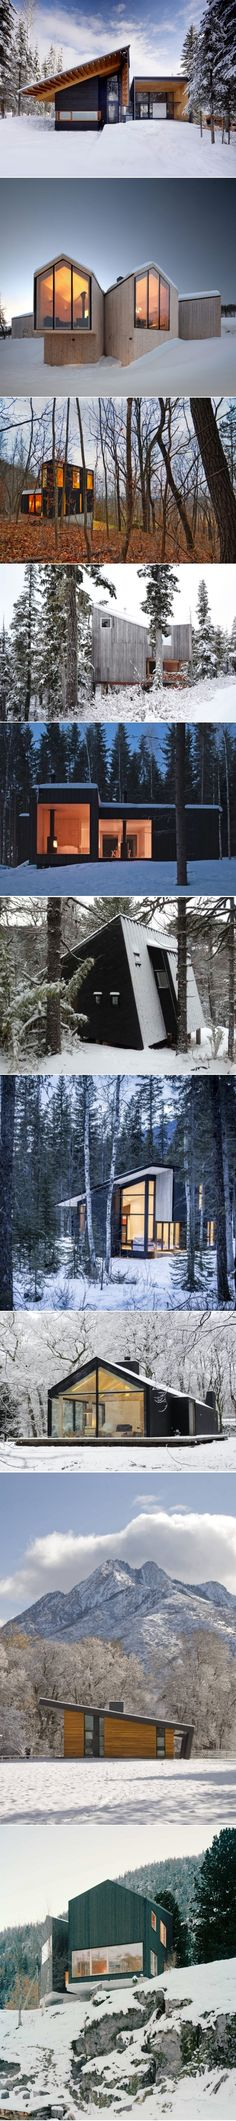 10 Modern Wintry Cabins We'd Be Happy to Hole Up In